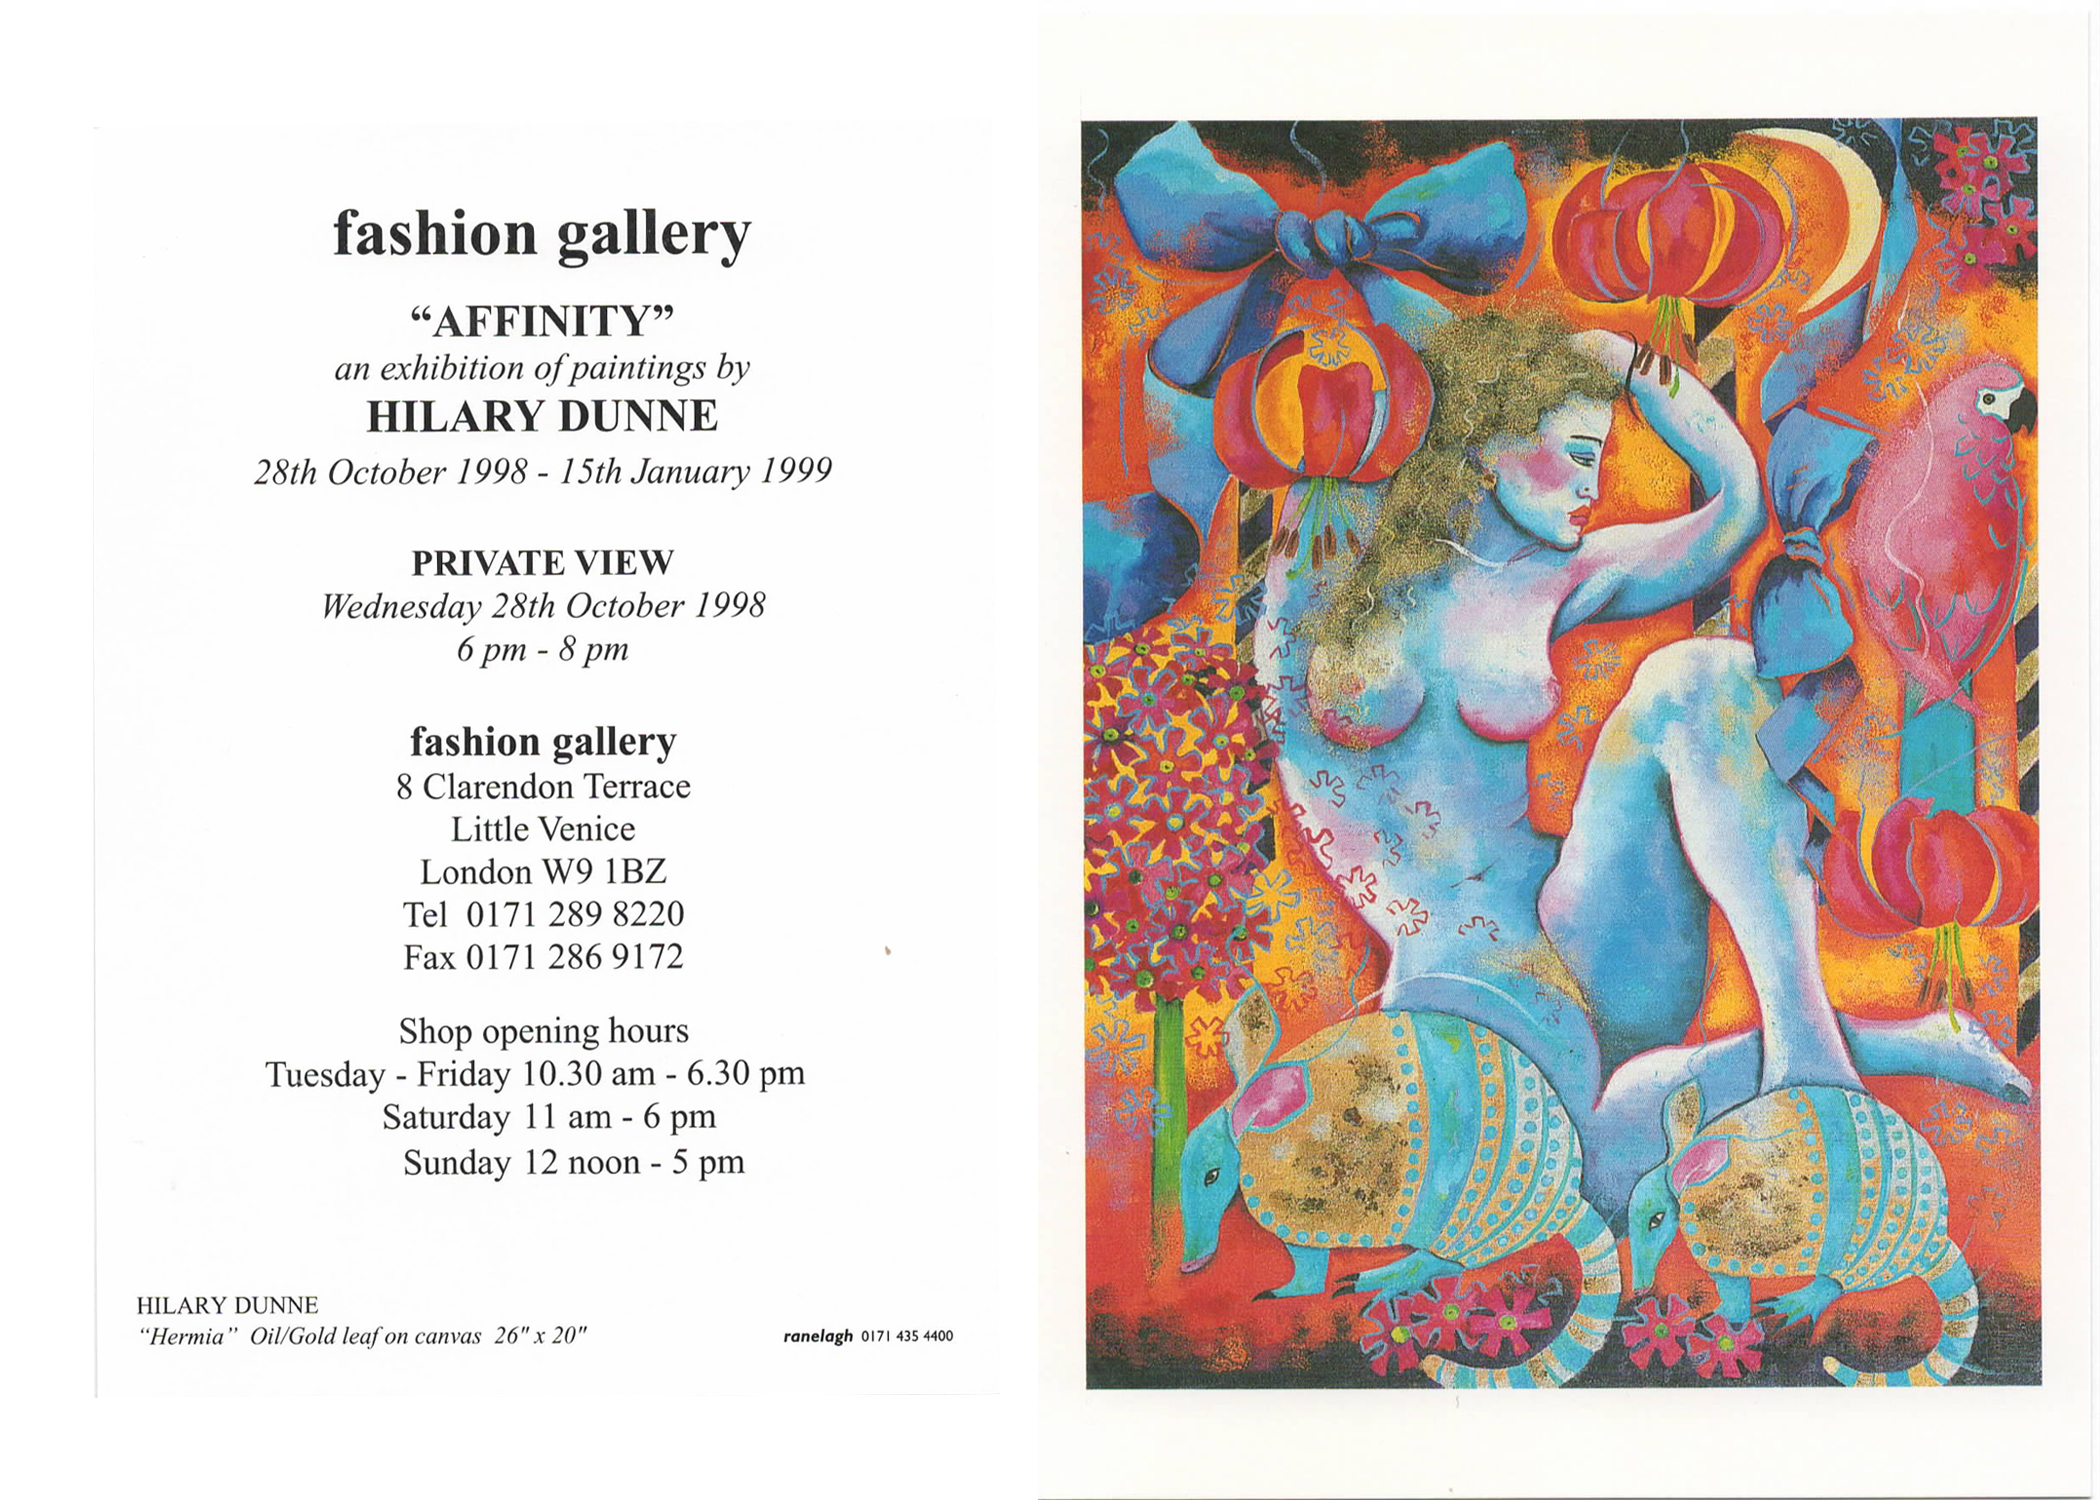 fashion gallery events and exhibitions - A selection of the many exhibitions, parties and launches - as widely covered by the press